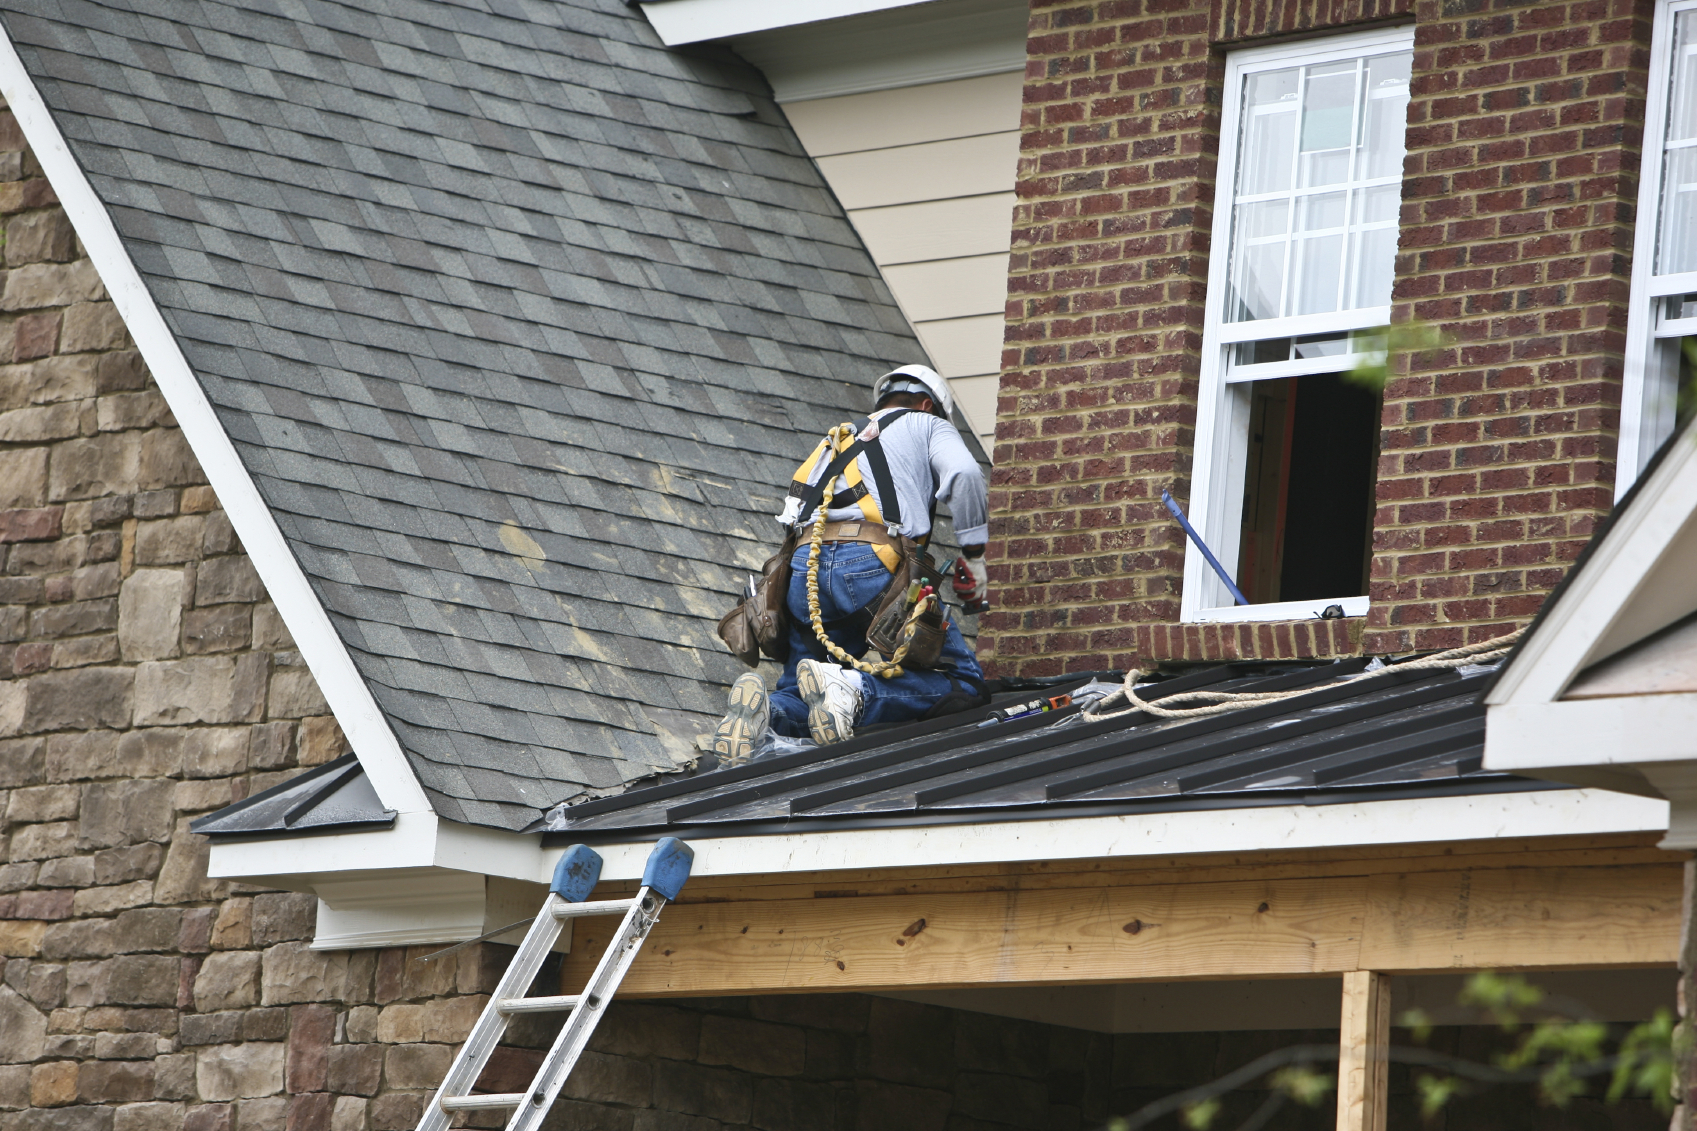 How to Maintain the Beauty of the Housing with the Best Roofing Services?